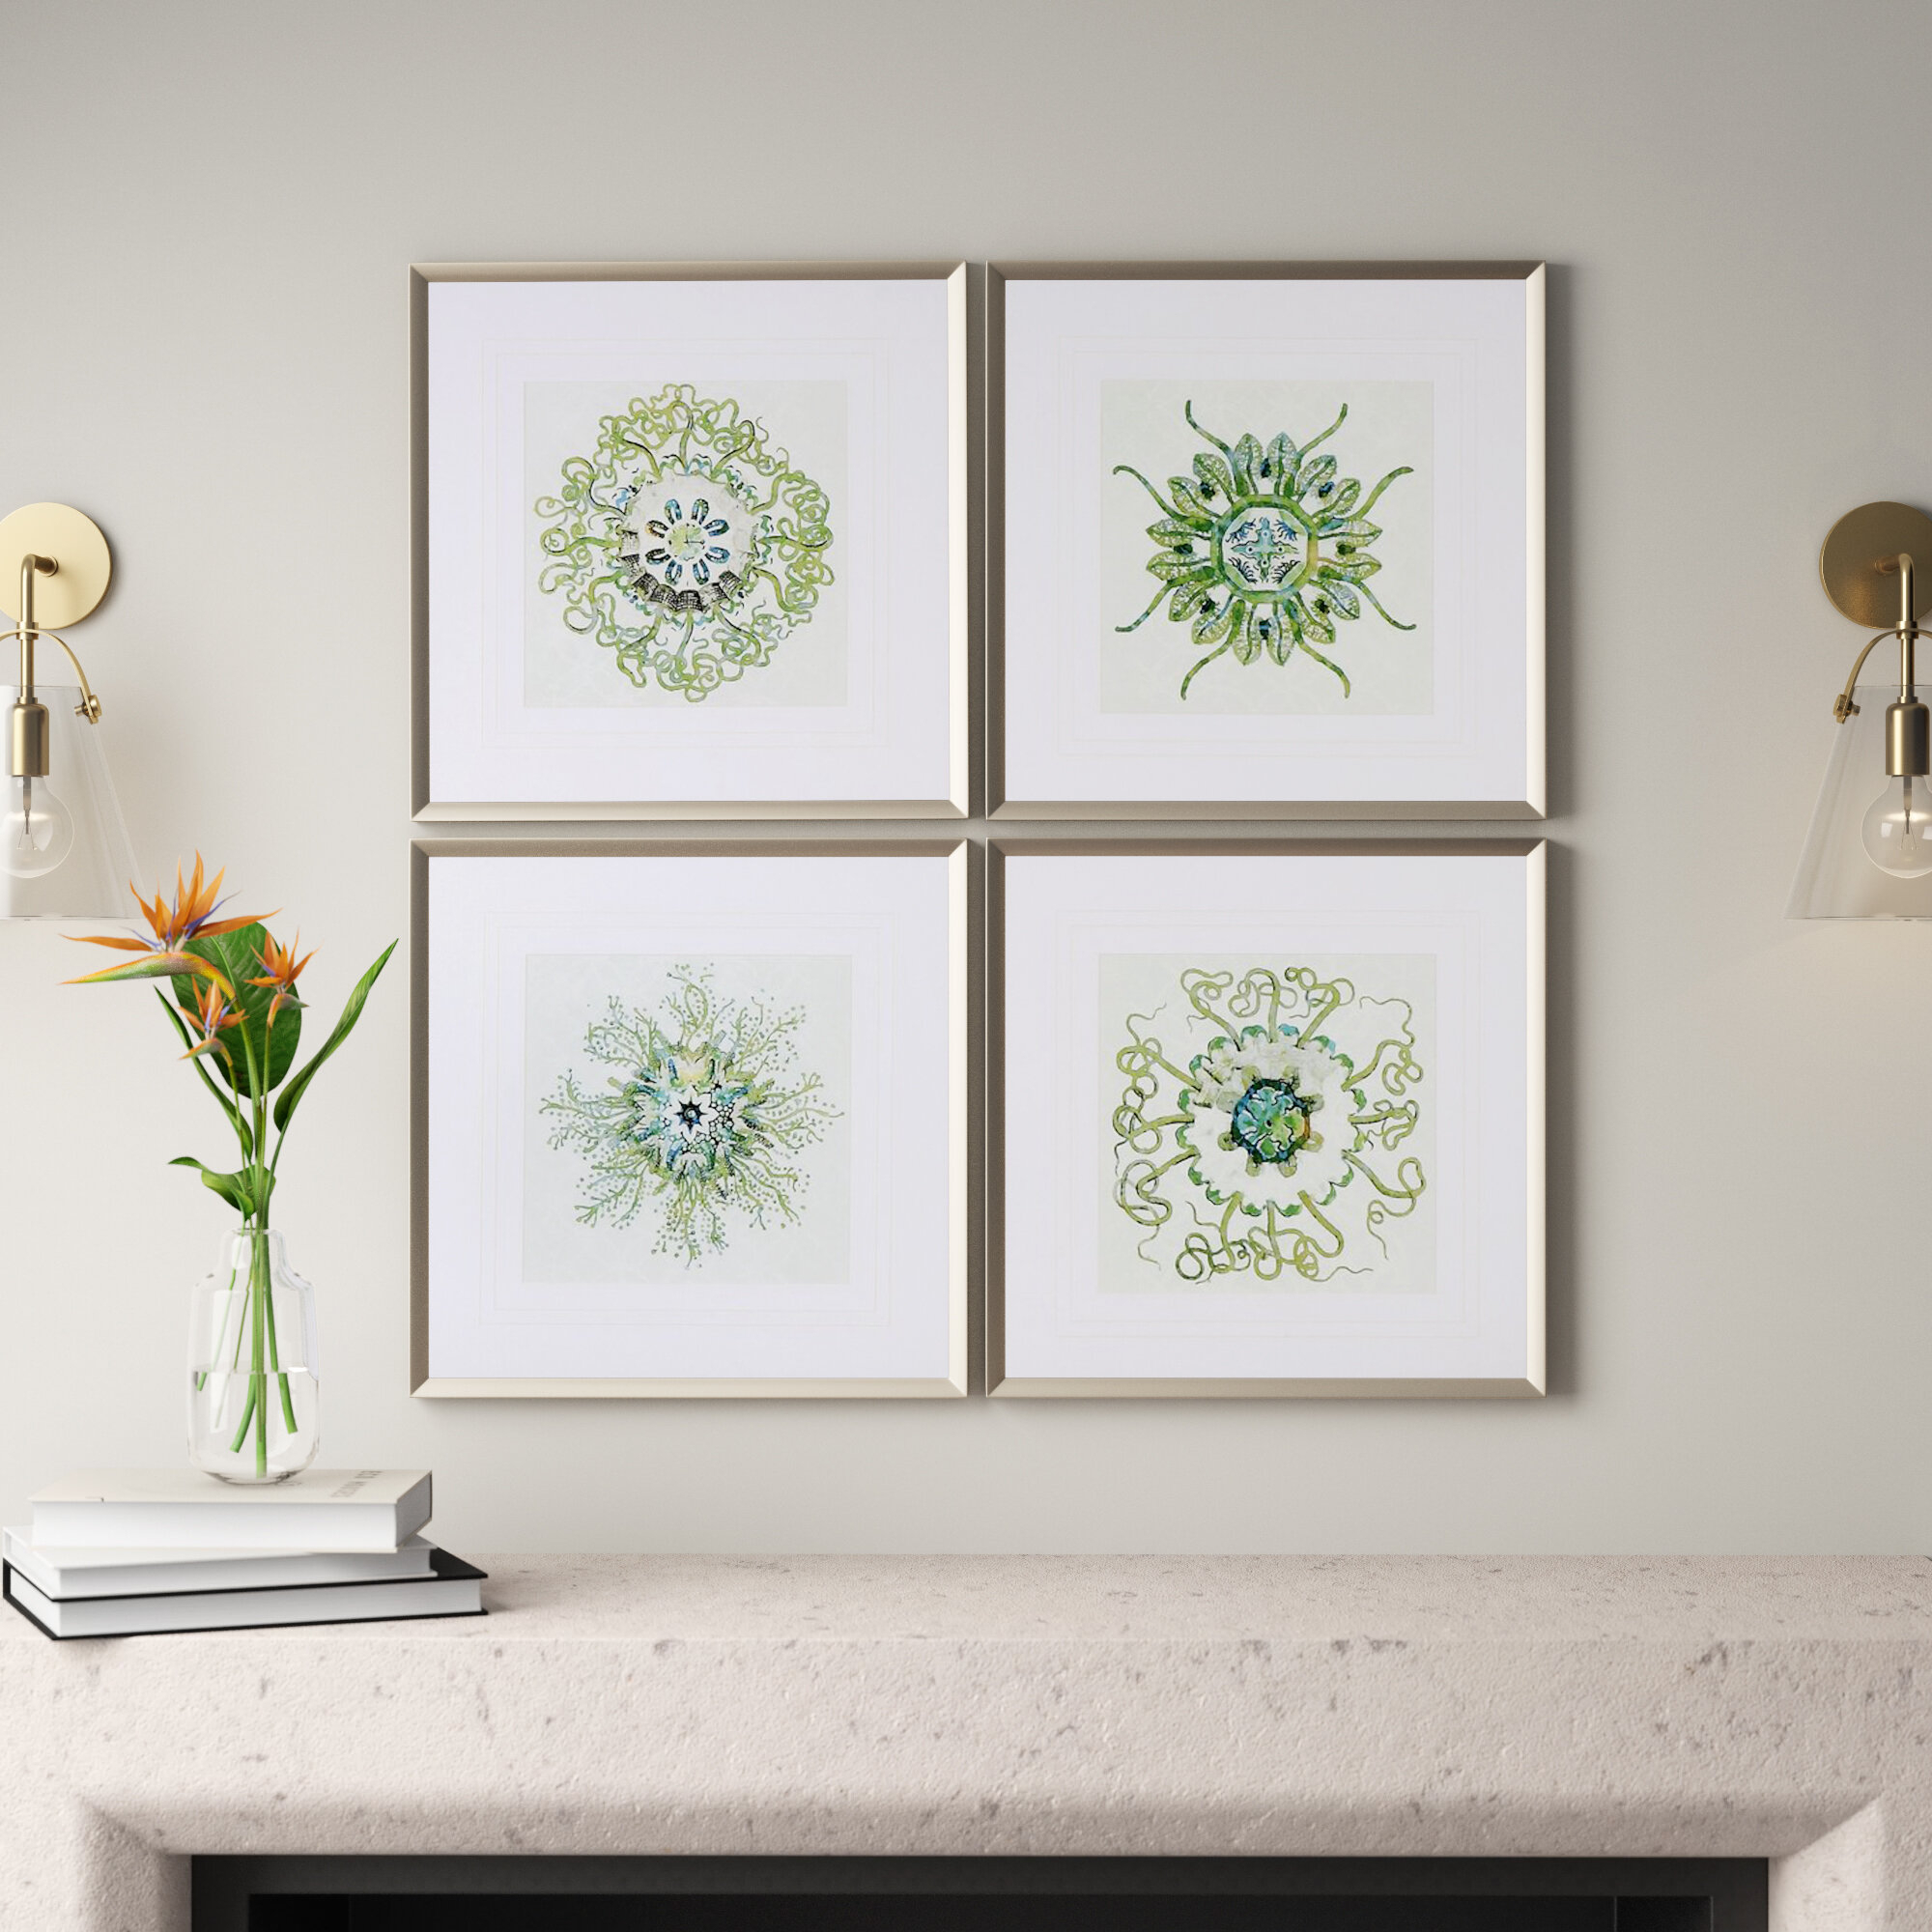 Wall Decor | Joss & Main With 4 Piece Metal Wall Decor Sets (View 6 of 30)